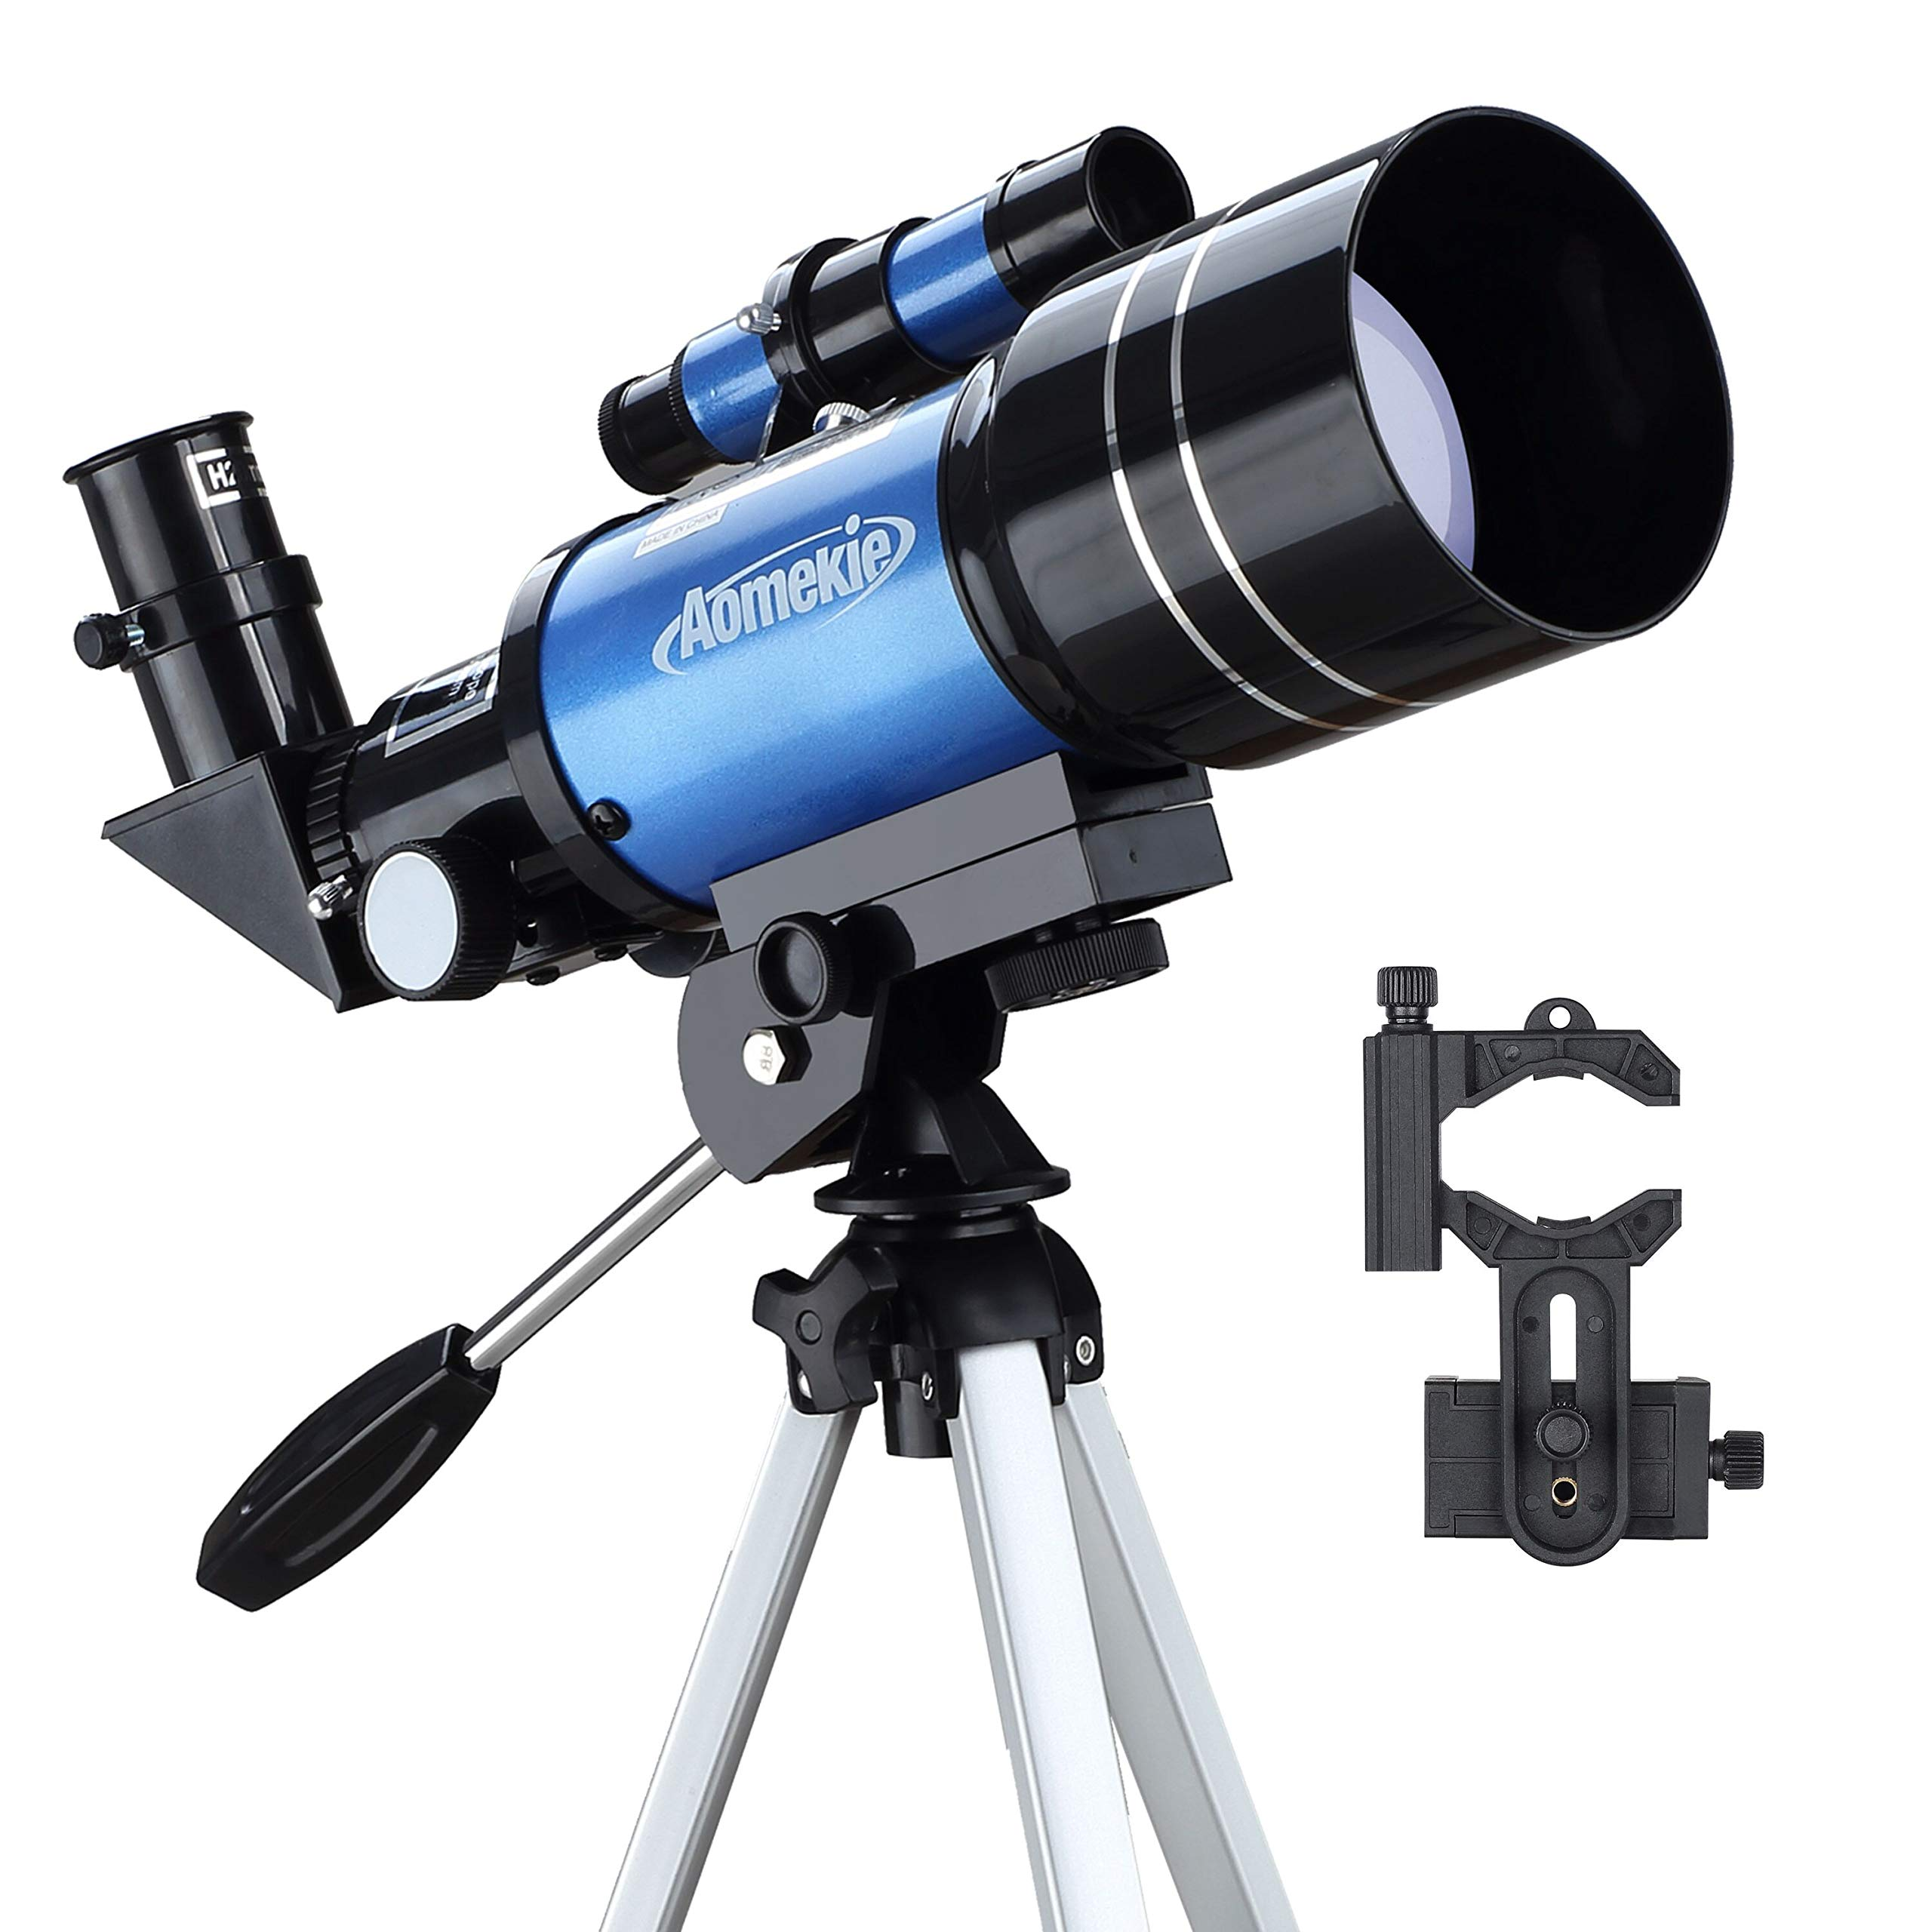 Aomekie Telescope for Kids Adults Astronomy Beginners 70mm Telescopes Travel Scope with Tripod Phone Adapter Finderscope 1.5X Erecting Eyepiece 3X Barlow Lens by AOMEKIE